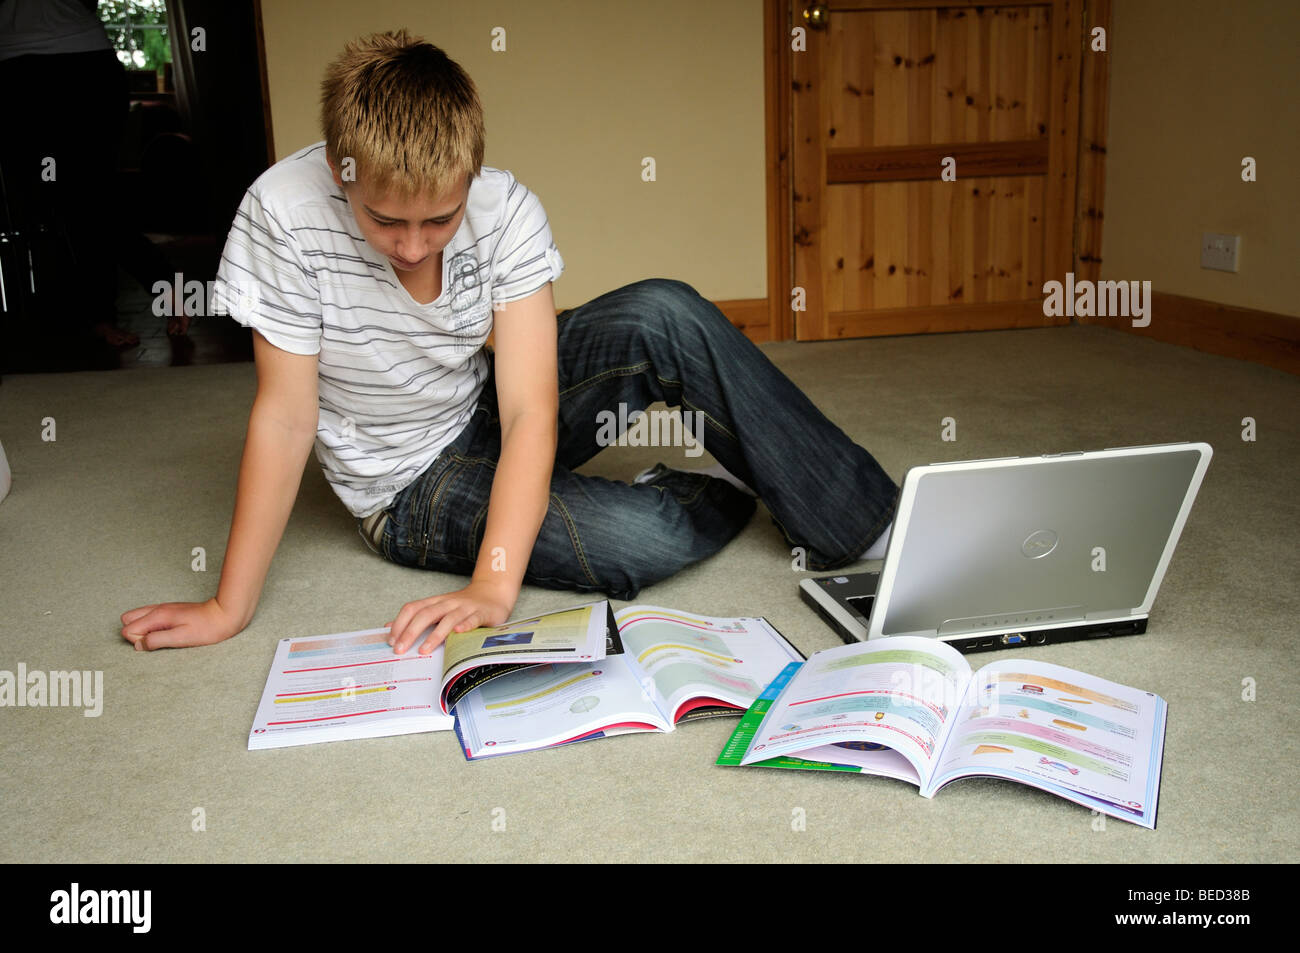 Teenager boy revising for GCSE exams student studying at home - Stock Image